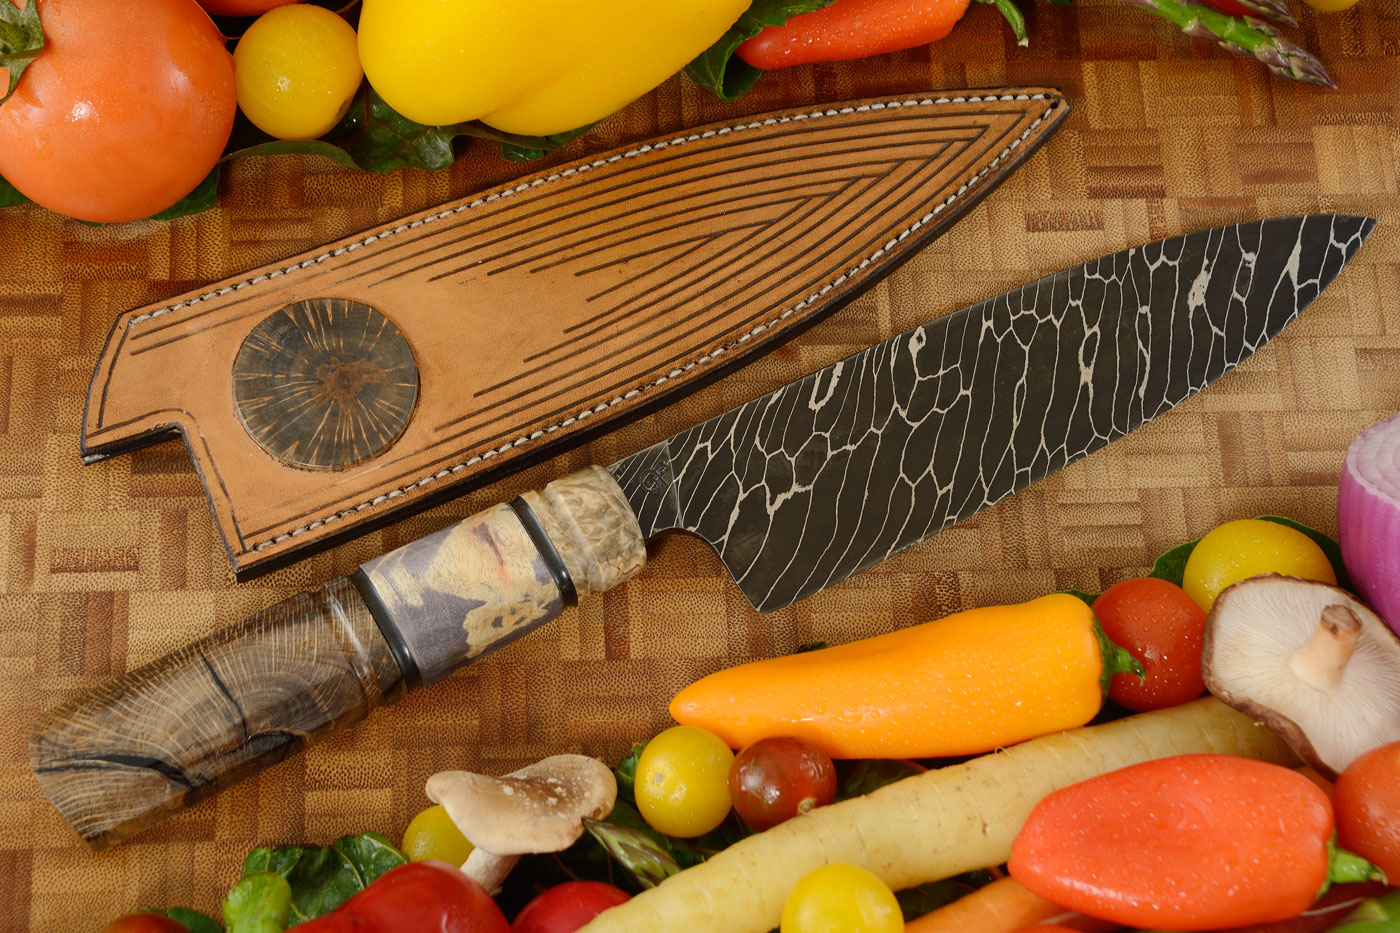 Damascus Chef Knife (7-3/4 in) with Birch, Mallee Burl, and Oak